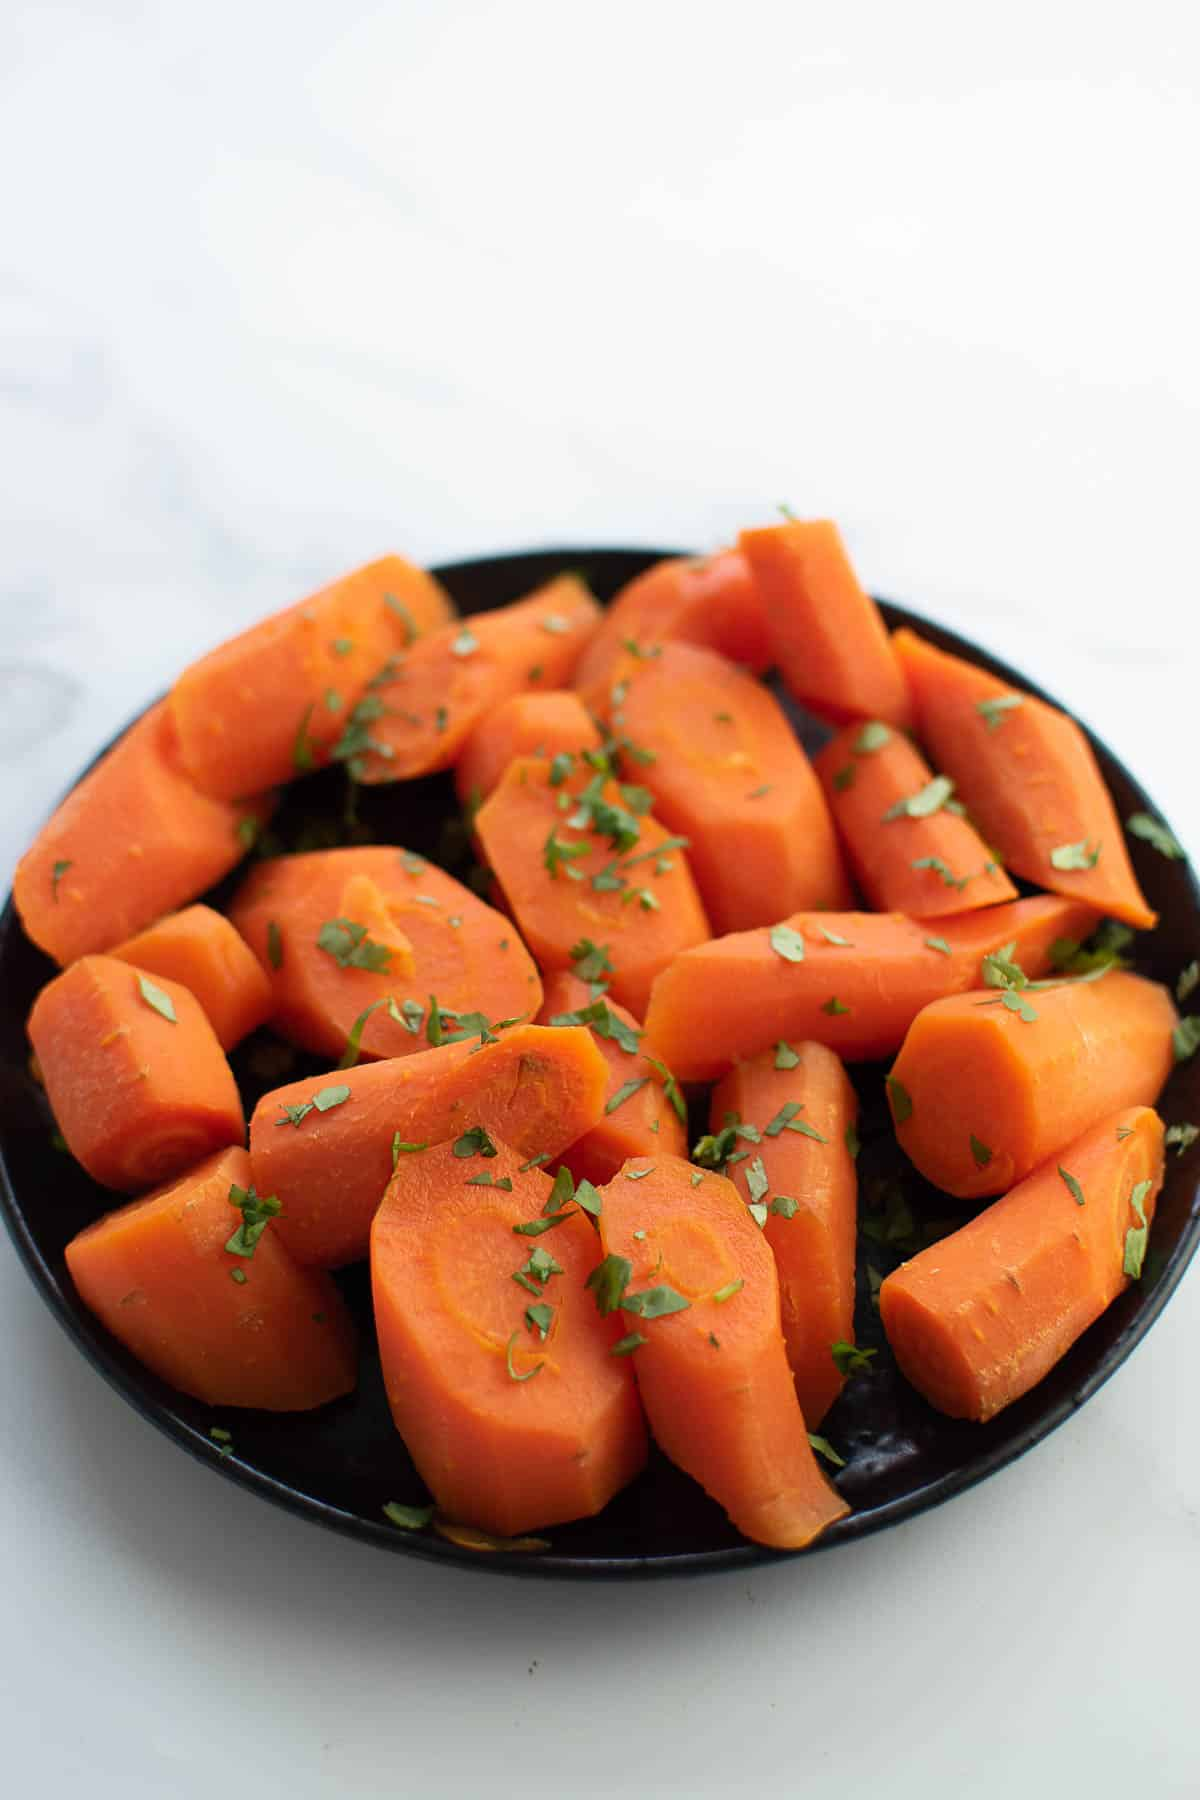 Carrots boiled in instant pot.